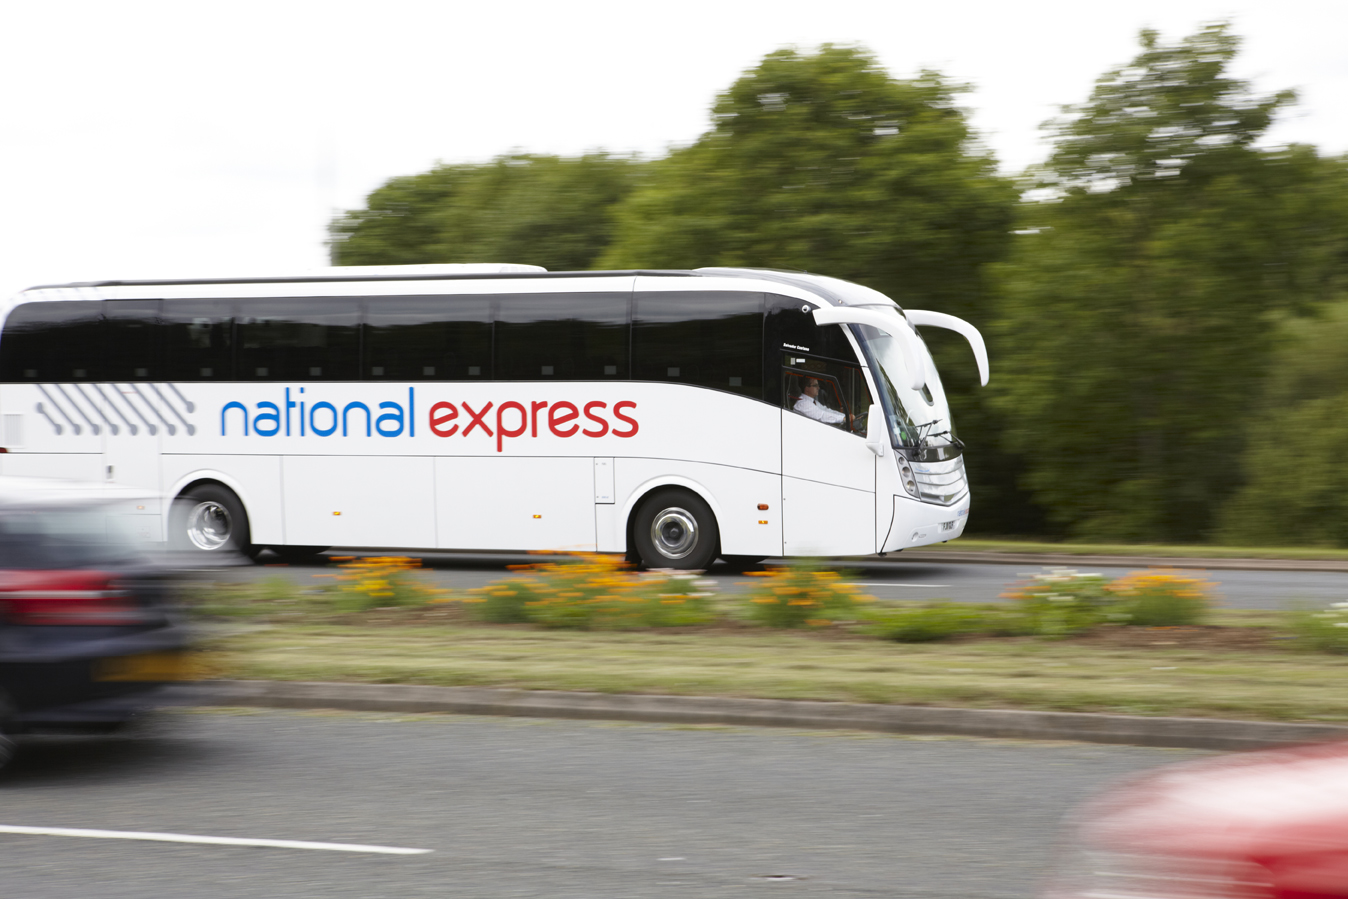 Get away in the uk with cheap national express coach tickets